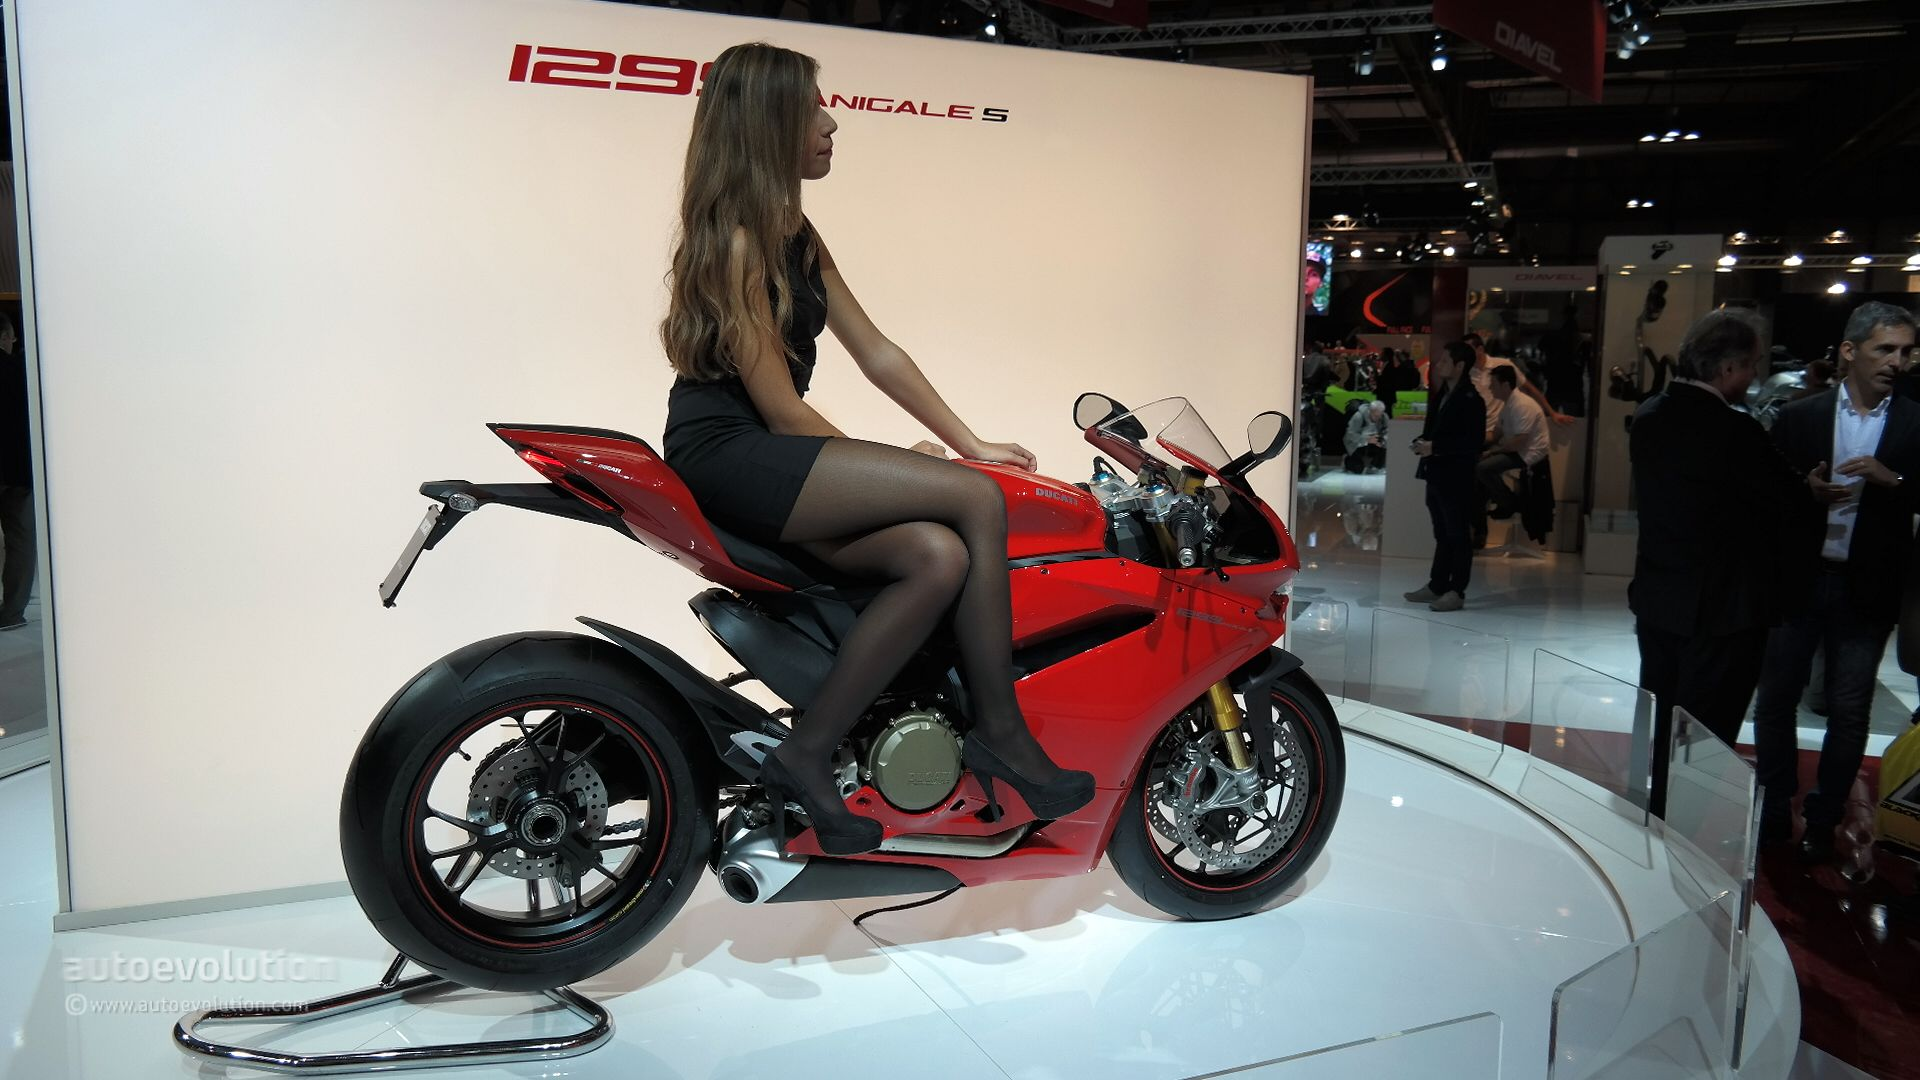 Ducati Panigale 1200cc >> 2015 Ducati 1299 Panigale S Unveiled: the Silicon Superbike [Live Photos] - autoevolution